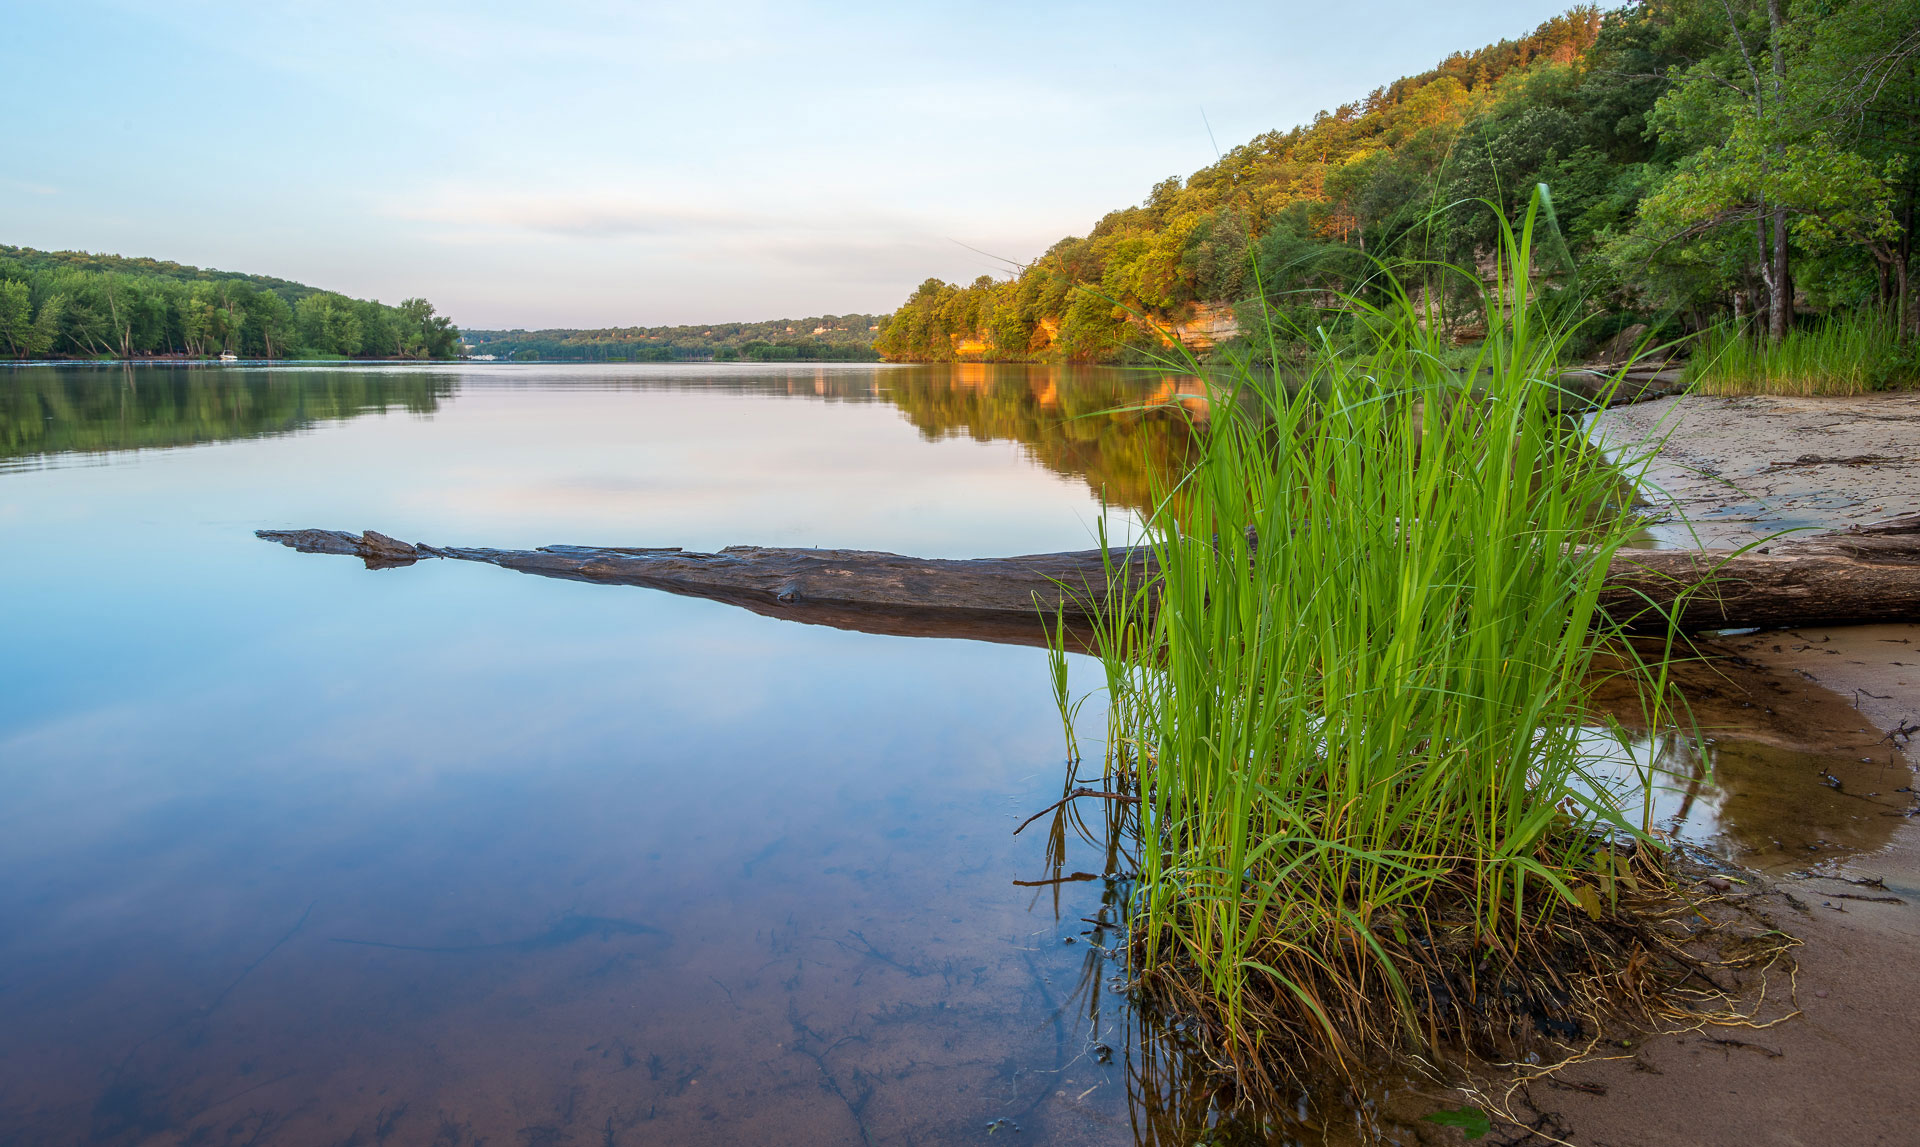 Sunrise on the St. Croix River  Shot with a Nikon D800E & 17-35mm f2.8 mounted to a Gitzo GT1932 Tripod